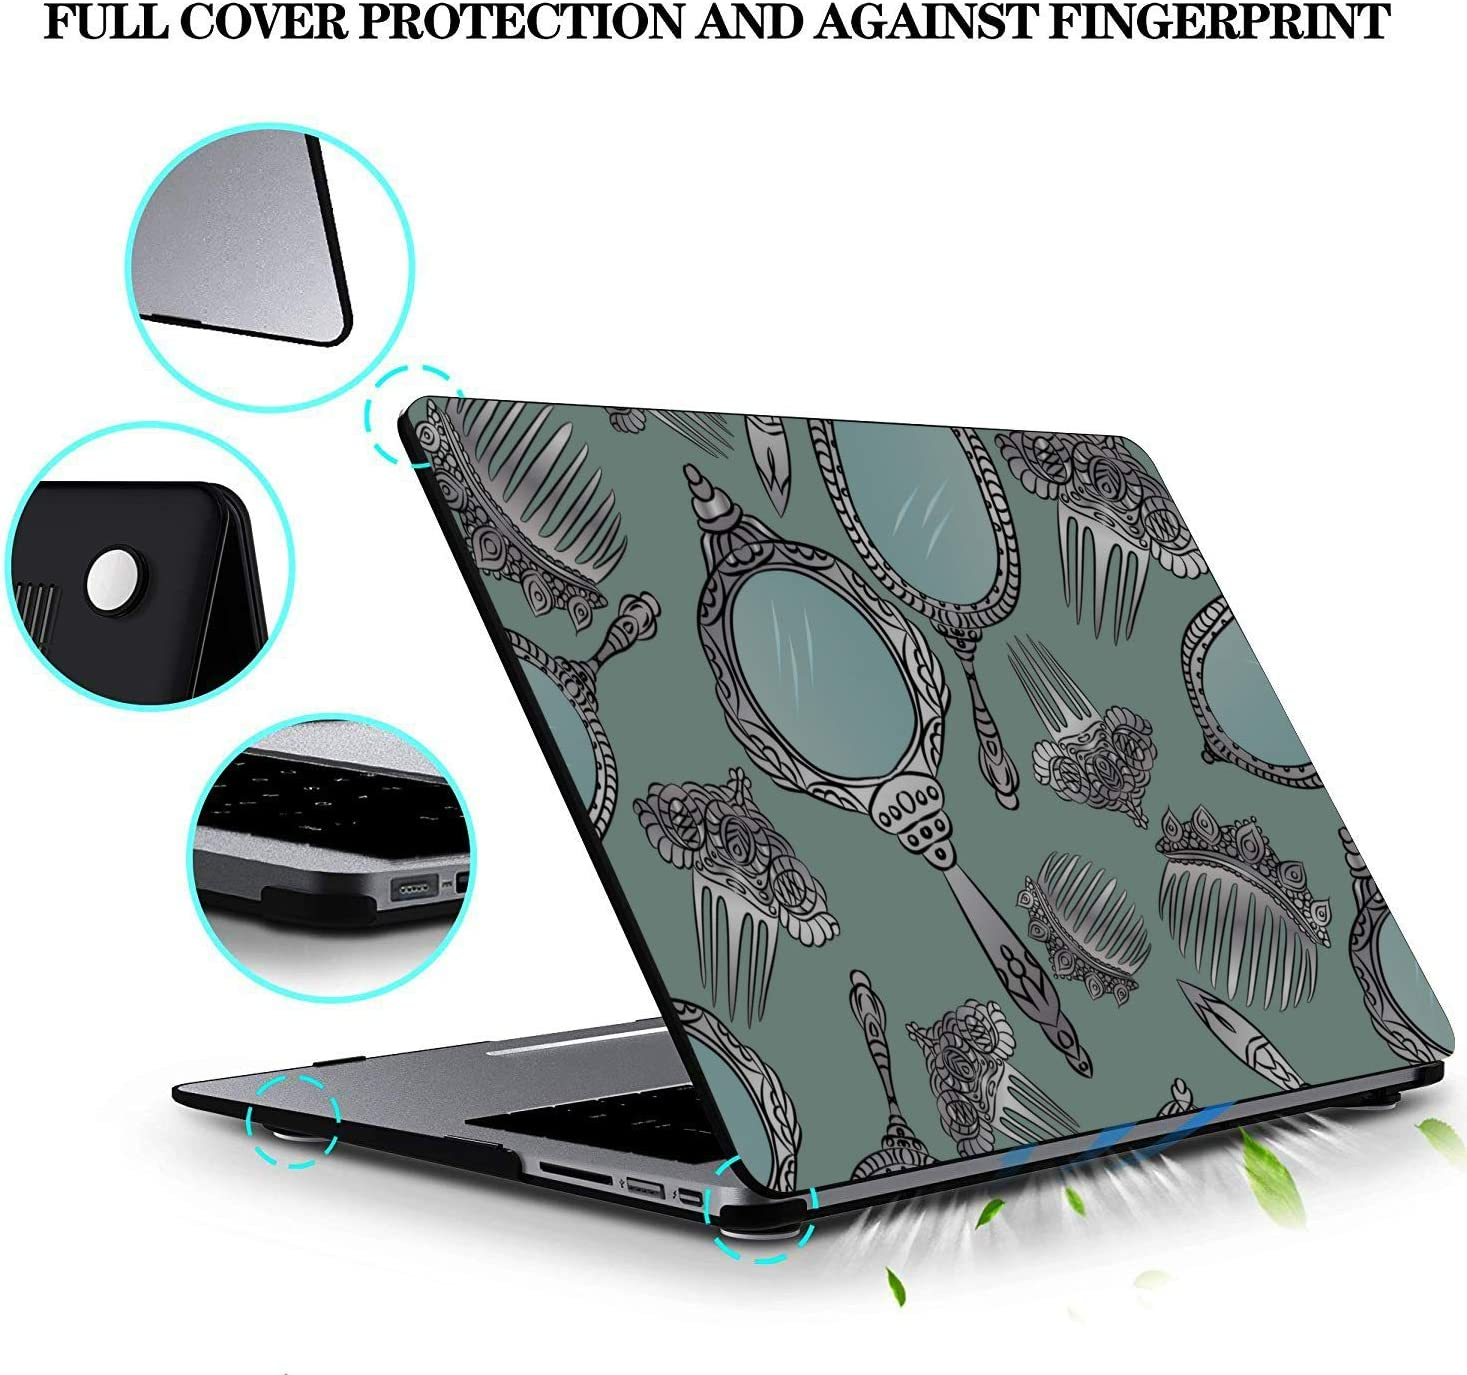 Mac Book Pro Case Small Objects Beauty Dressing Mirror Plastic Hard Shell Compatible Mac Air 11 Pro 13 15 13 Inch MacBook Case Protection for MacBook 2016-2019 Version